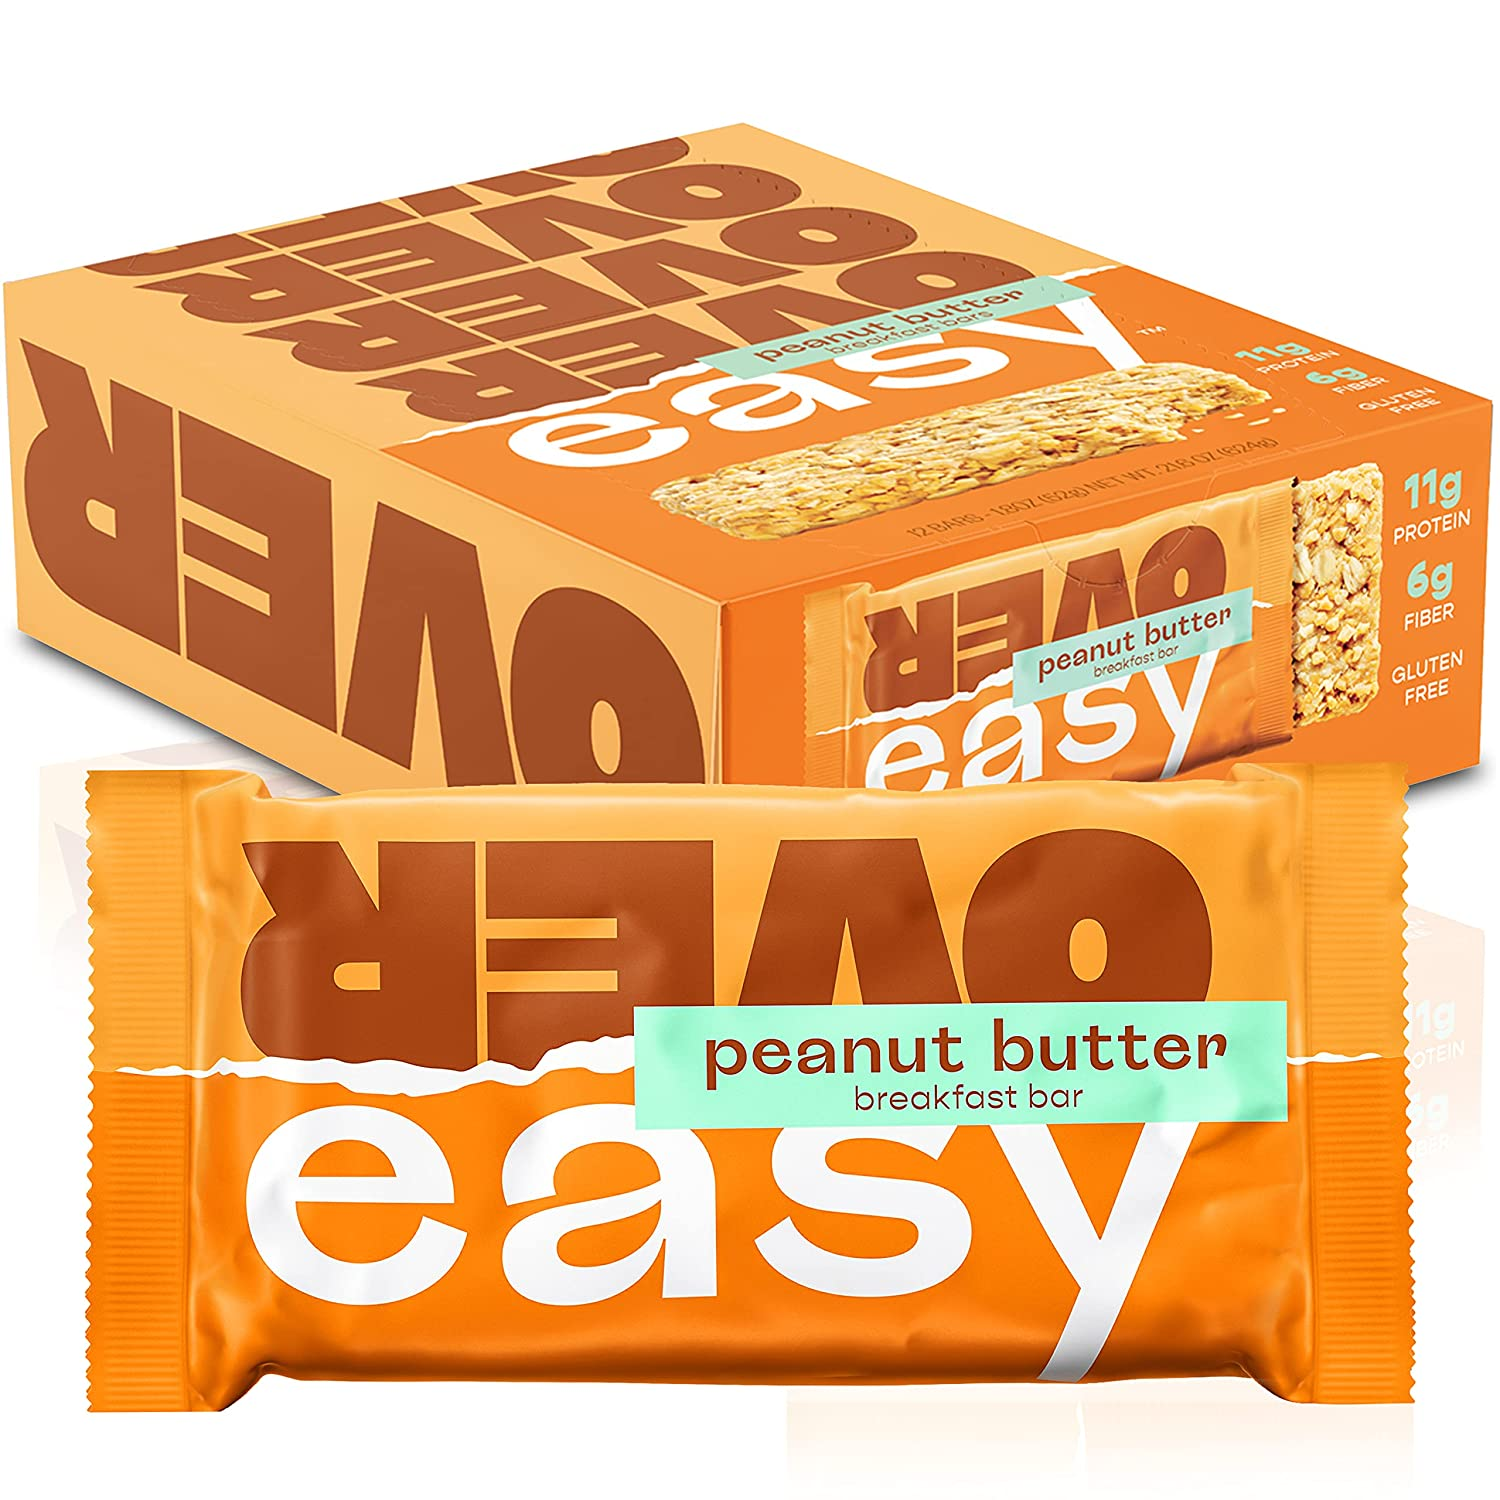 OVER EASY Peanut Butter Breakfast Bars | All Natural, Clean Ingredient, 10g Protein & 6g Fiber Breakfast Bars (Peanut Butter) | Gluten Free, Dairy Free, Soy Free